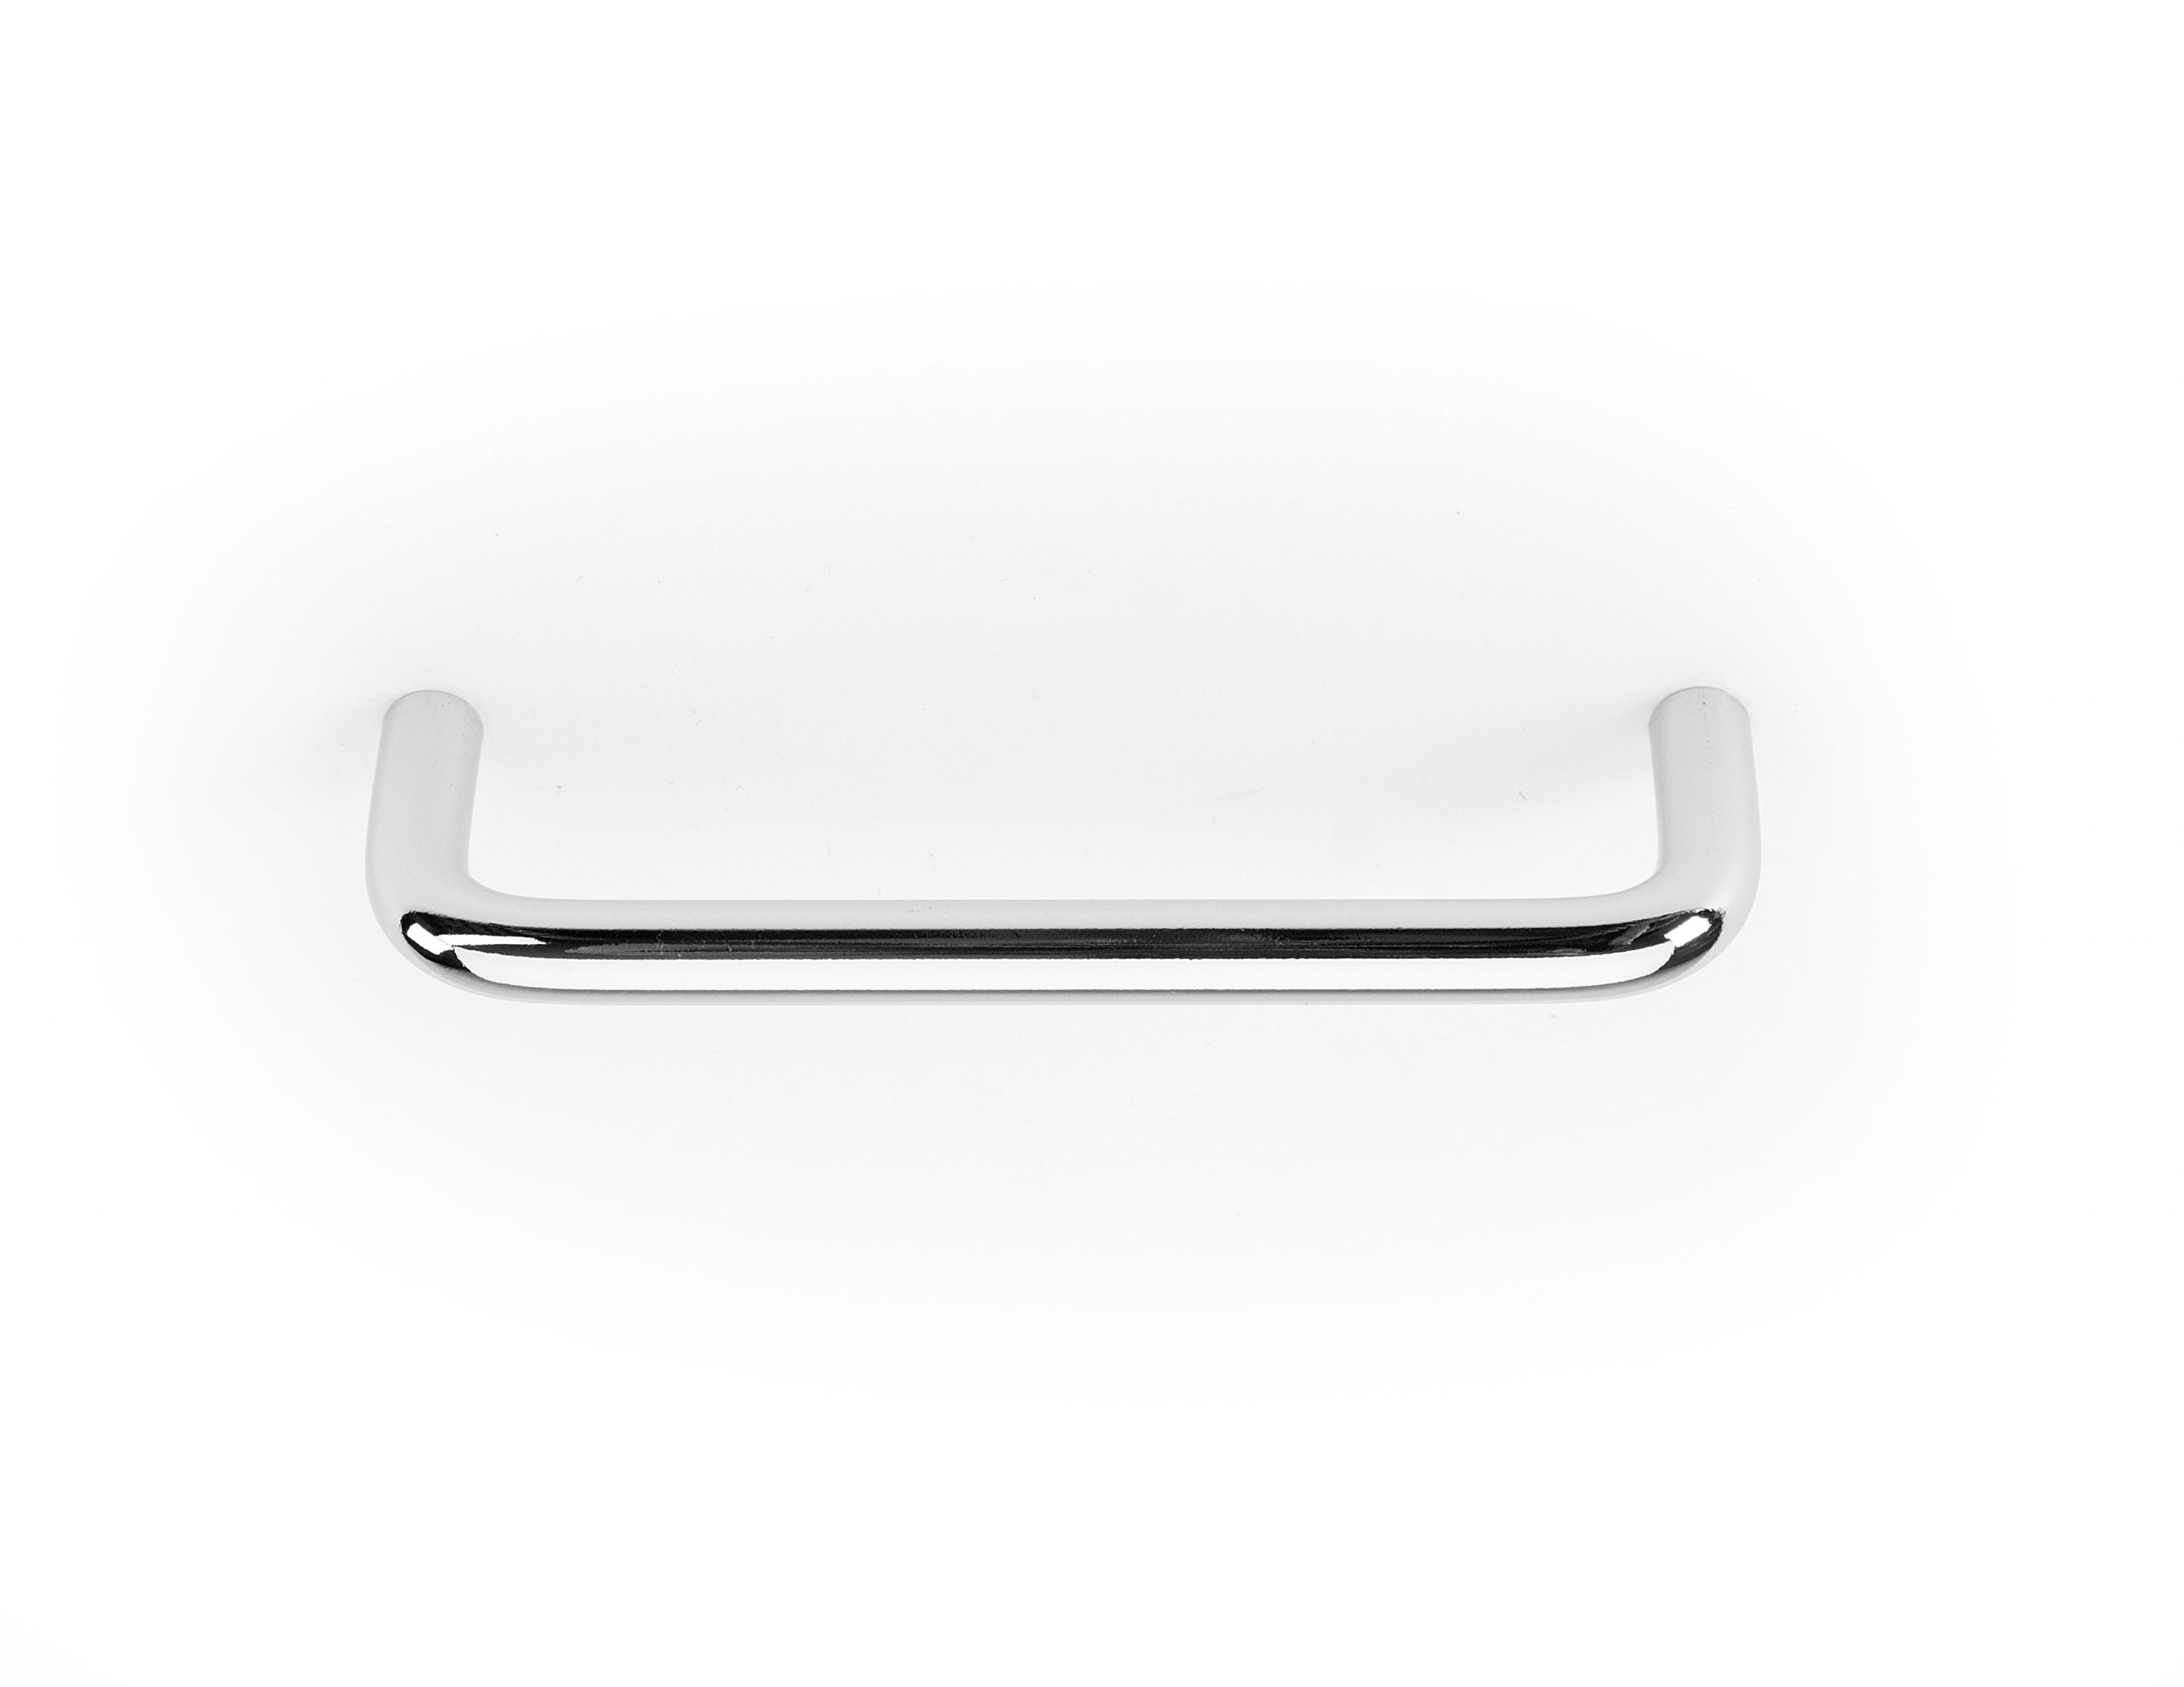 96mm Handle - Straight - Chrome